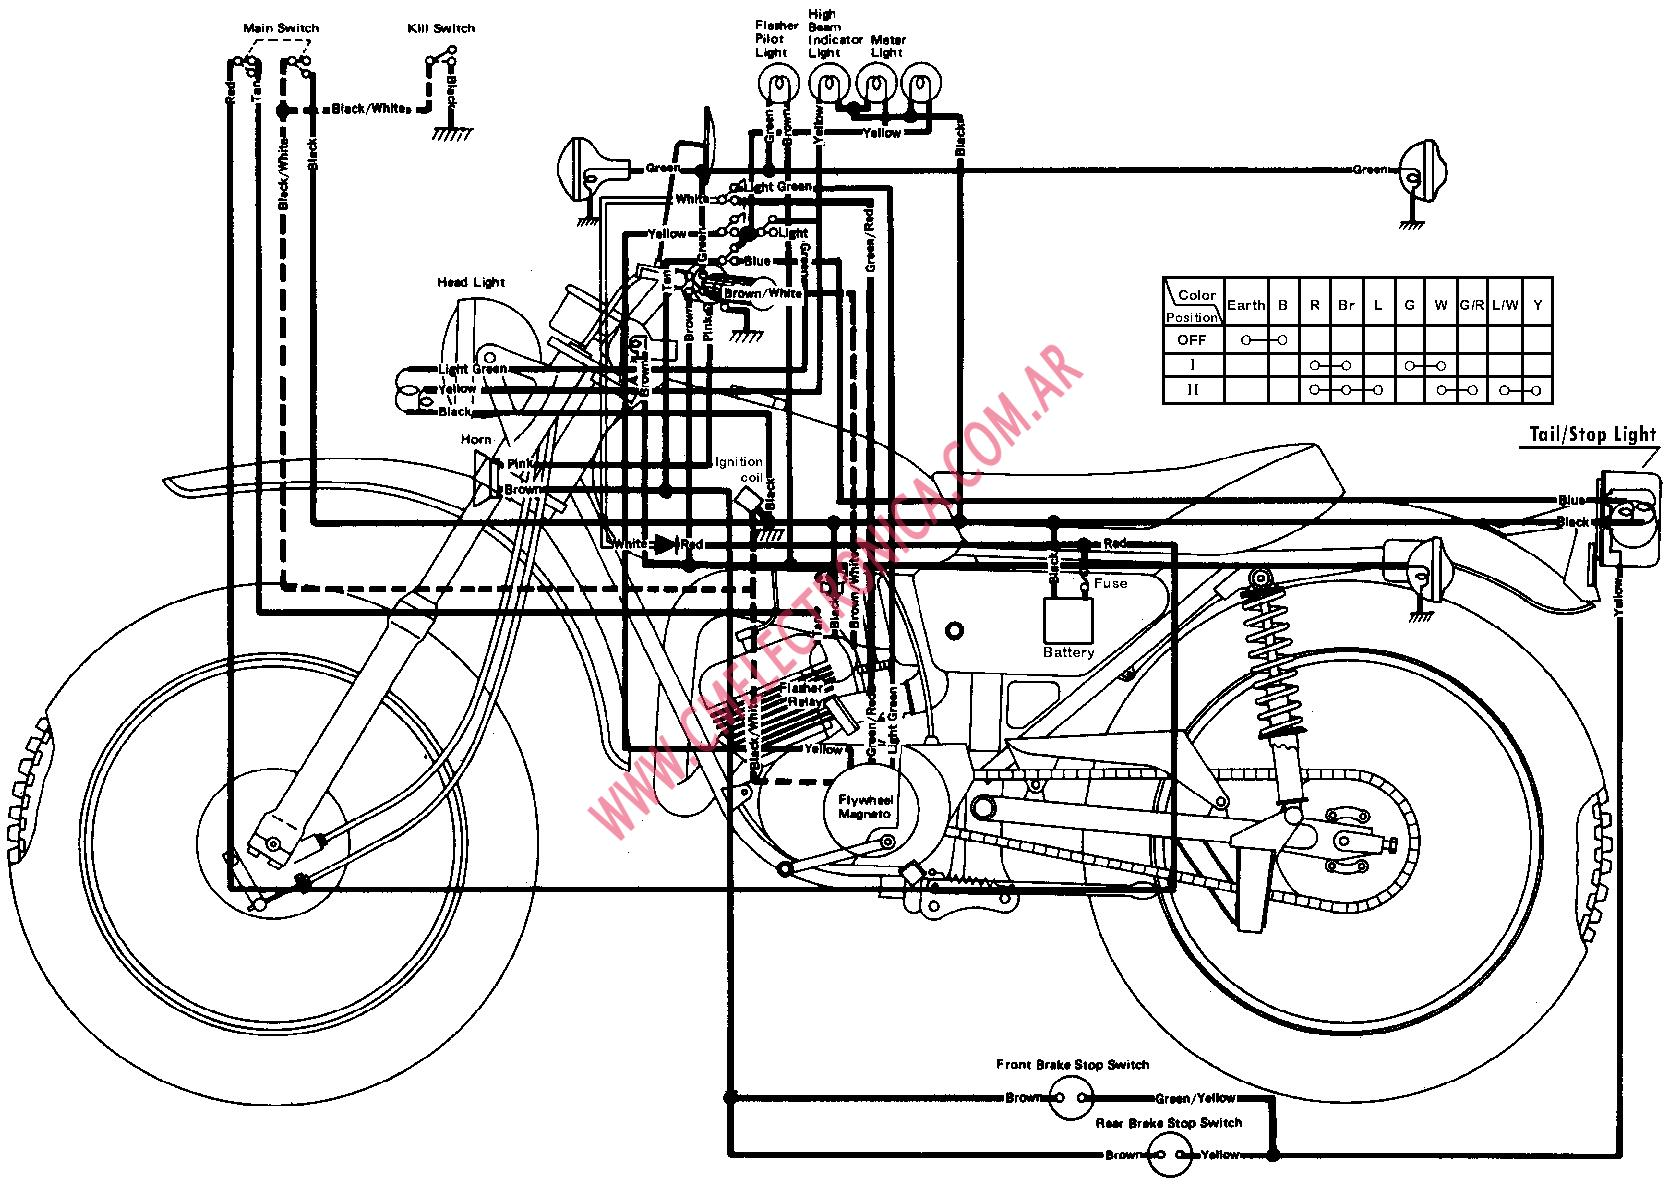 [DIAGRAM] Baja 50cc Atv Wiring Diagram FULL Version HD